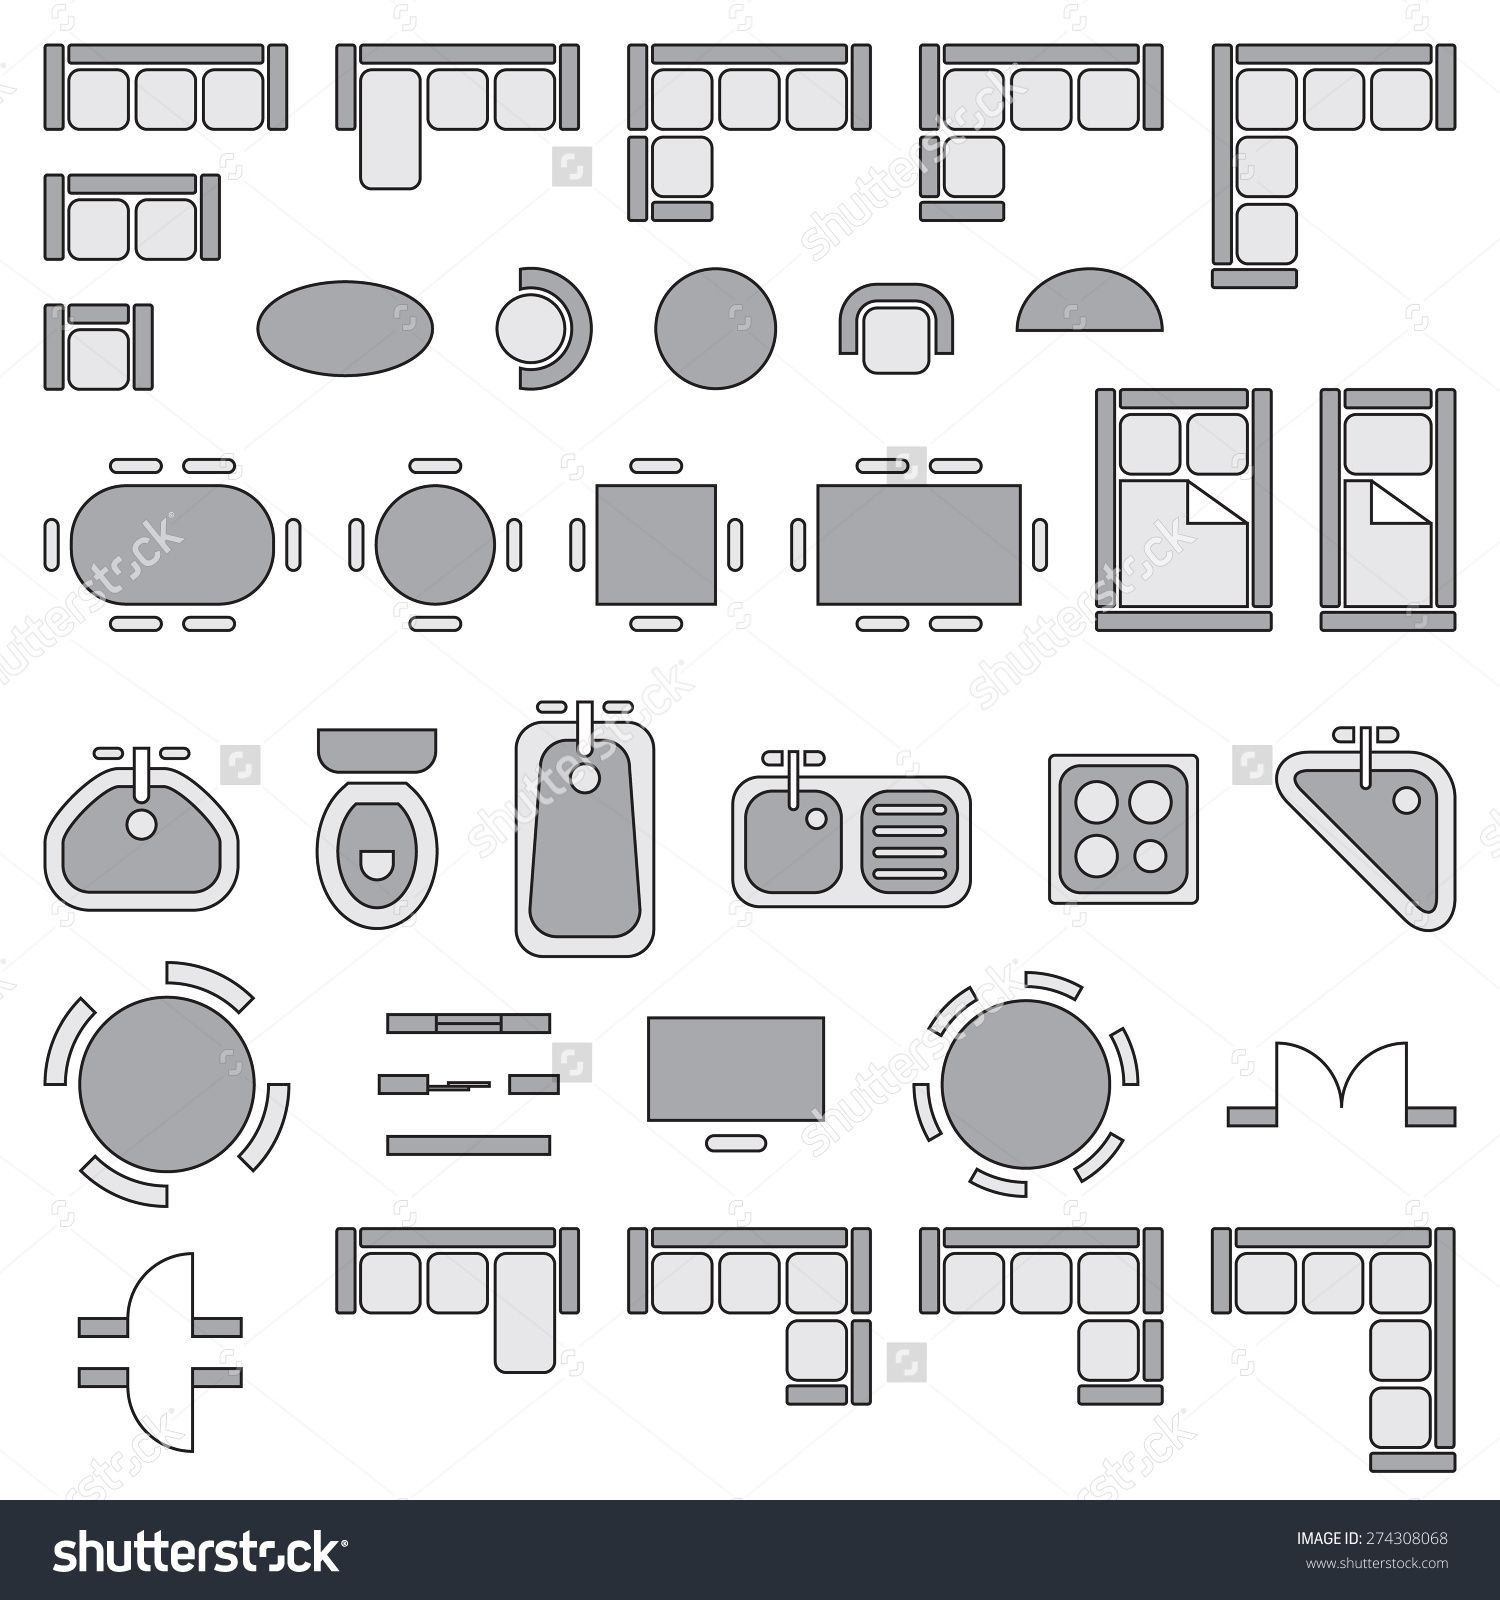 Classroom Design Meaning : Image result for symbols household furniture